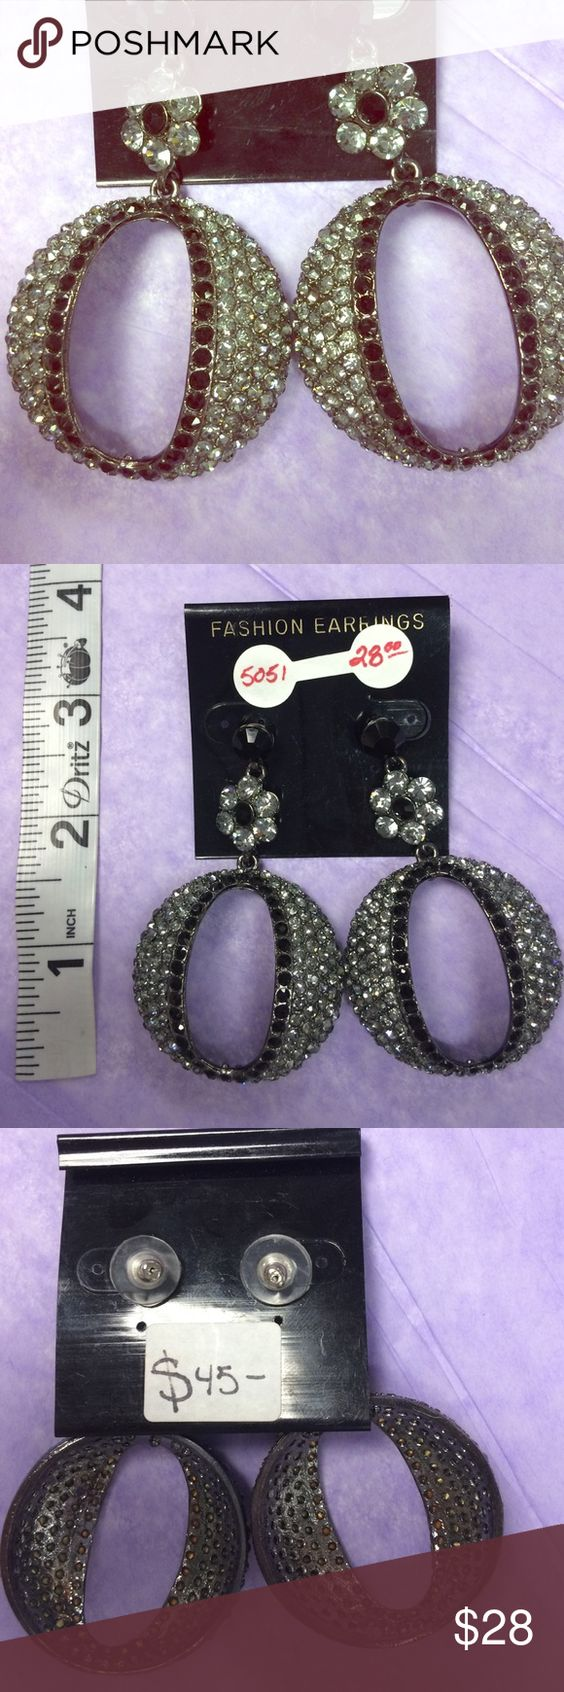 Earrings New, never worn rhinestone earrings.  Orig retail was $45 (tag is on back of card). Jewelry Earrings